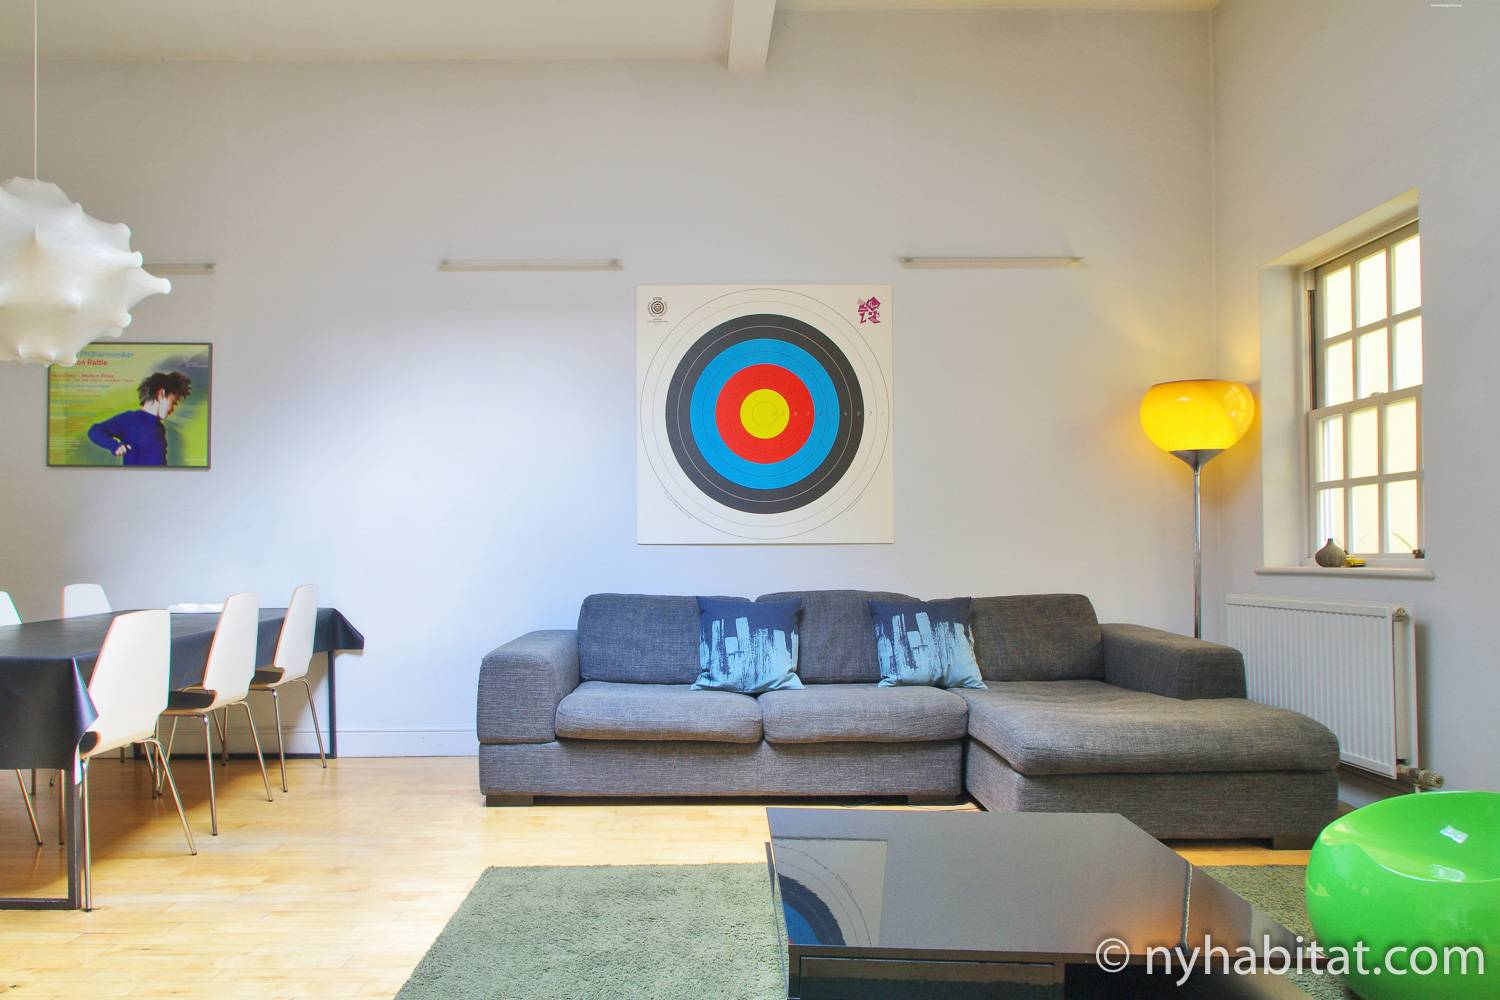 An image of 2-bedroom apartment rental LN-1899 in Covent Garden with sofa, lamp, coffee table, and matching decor.